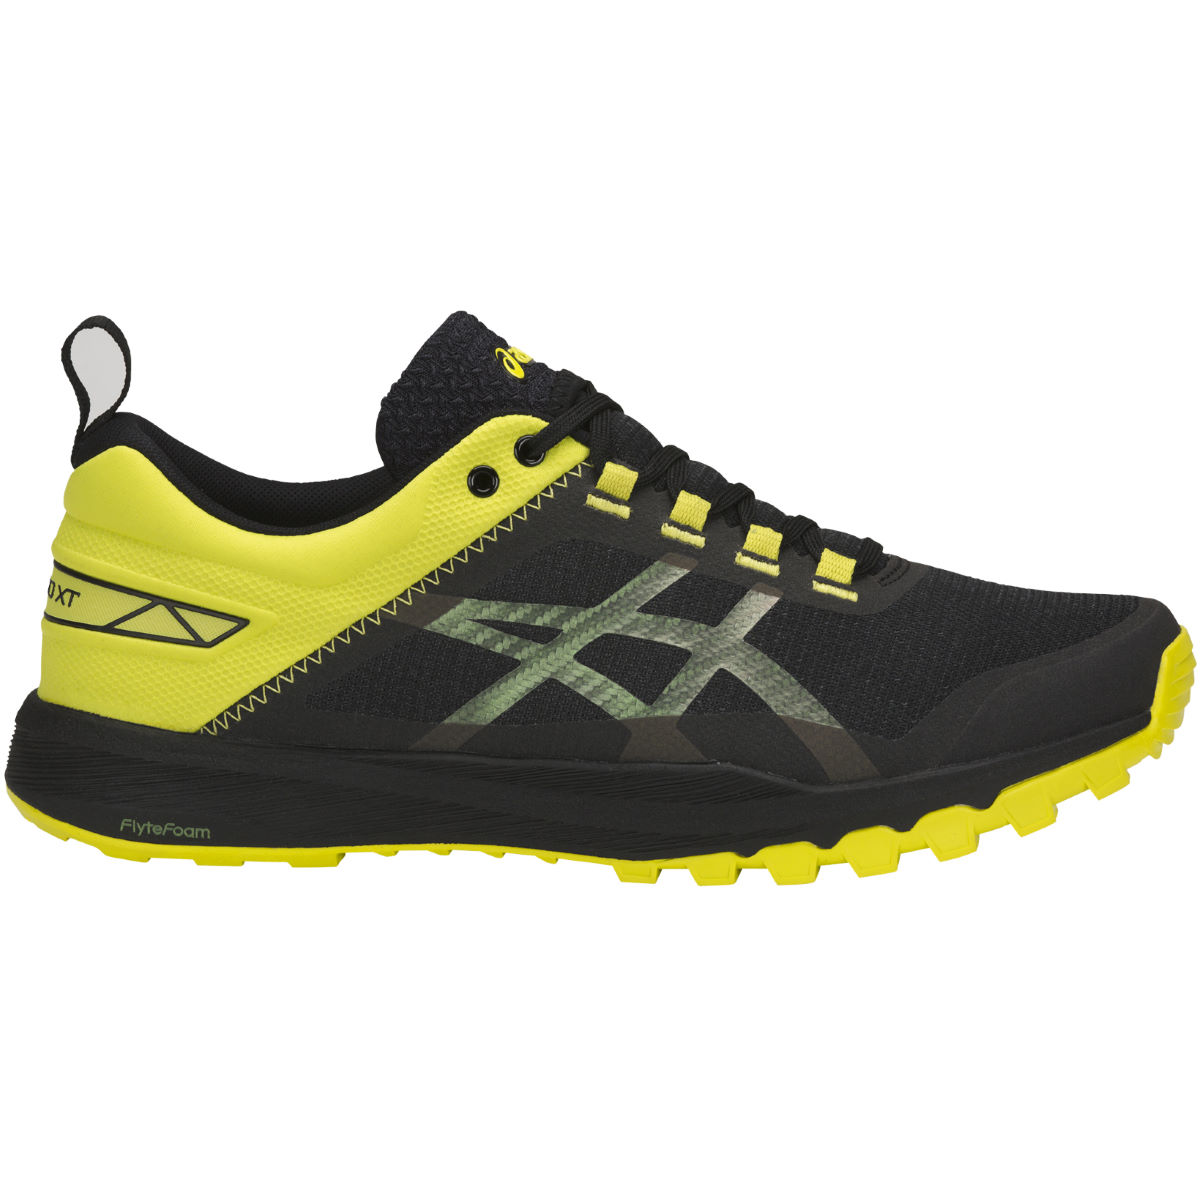 Chaussures Asics Gecko XT - UK 10 BLACK/CARBON/SULPHUR